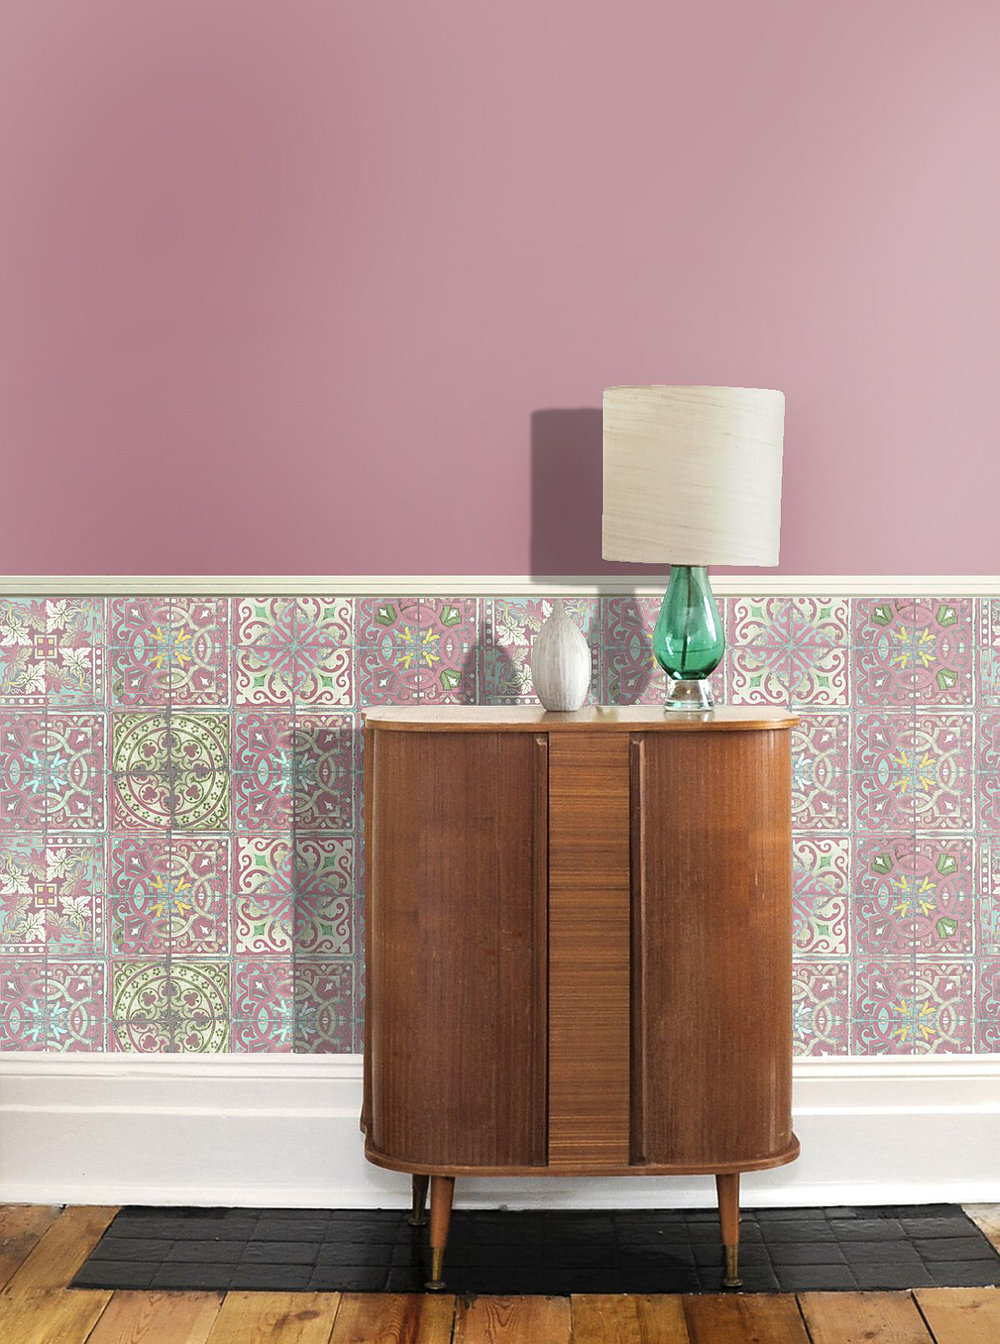 Louise Body Patchwork Dusty Pink Pink / Blue / White Wallpaper extra image